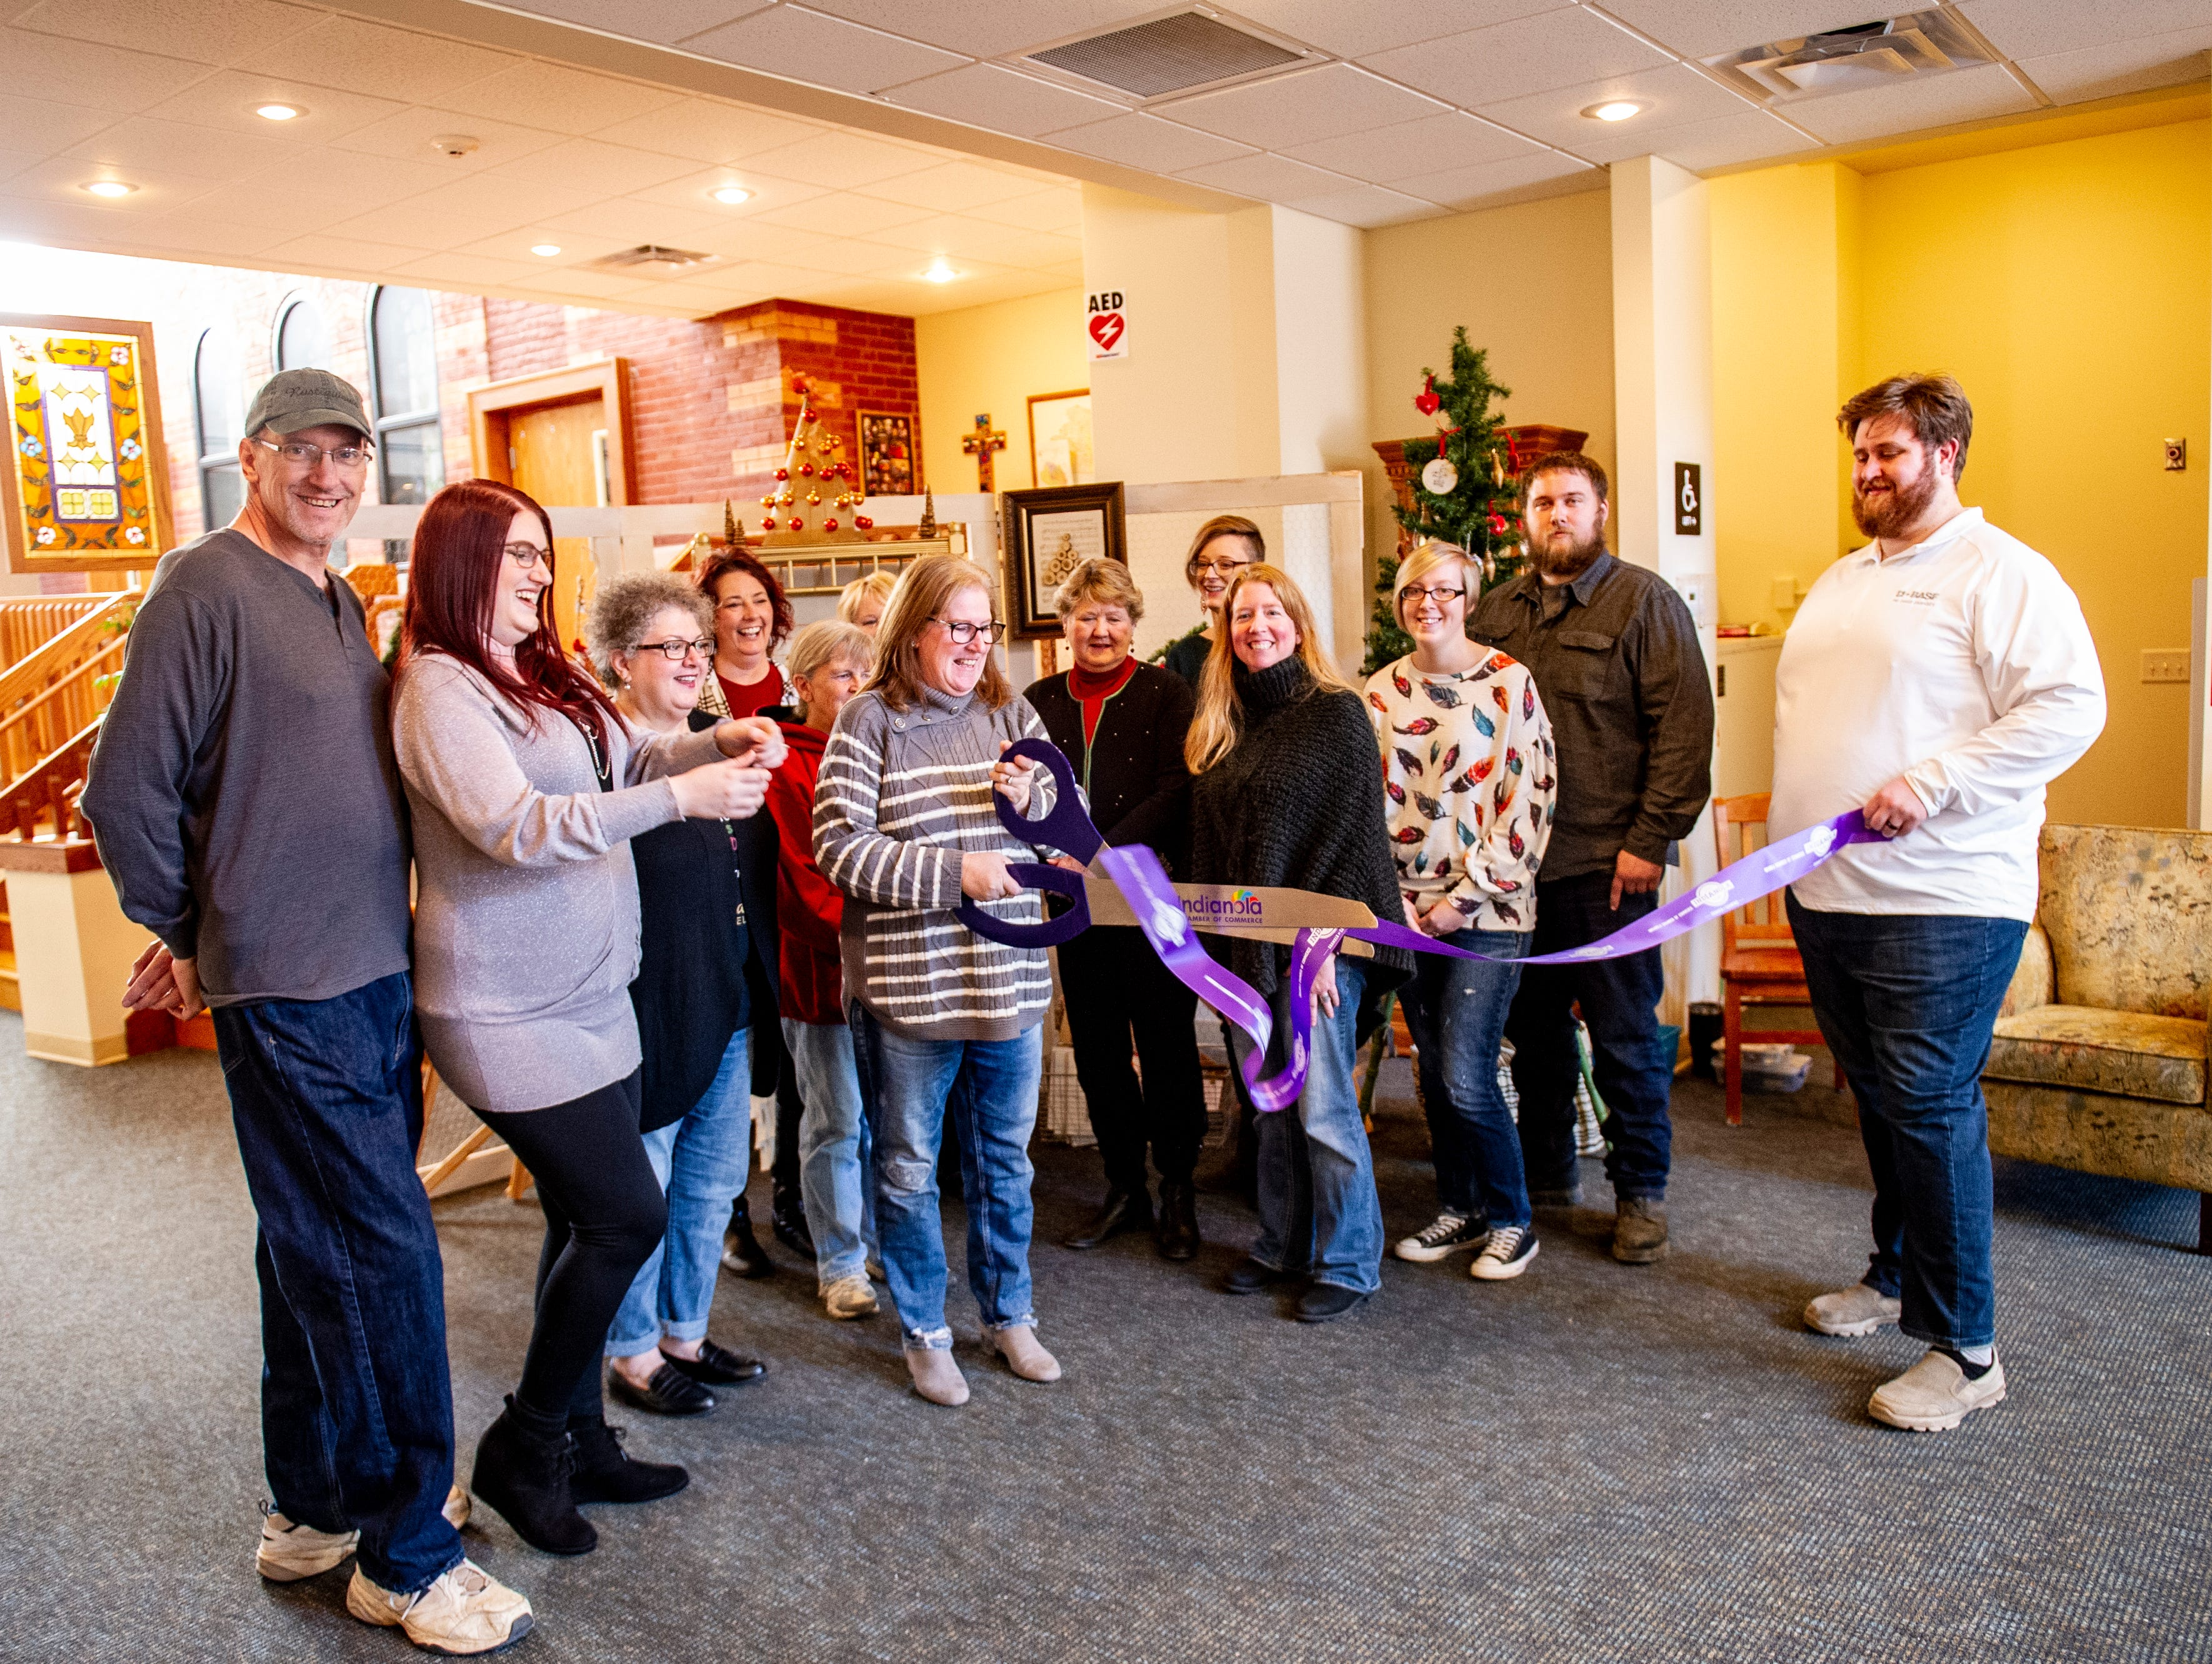 A ribbon-cutting was held for the Rustiqueiowa Homespun Holiday Market held at the Trinity Presbyterian Church in Indianola Nov. 24, 2018.